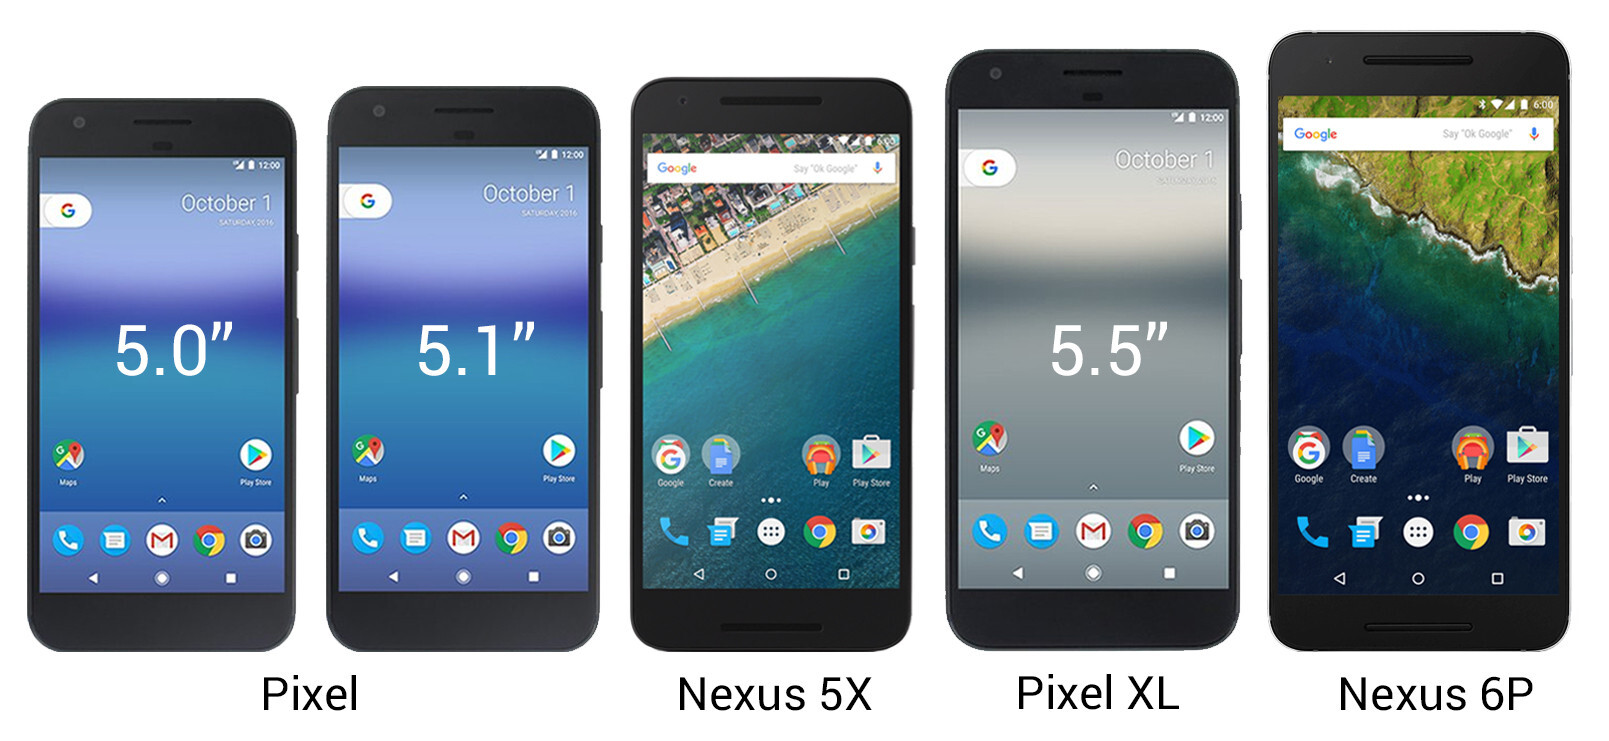 google pixel and pixel xl sized up against each other and